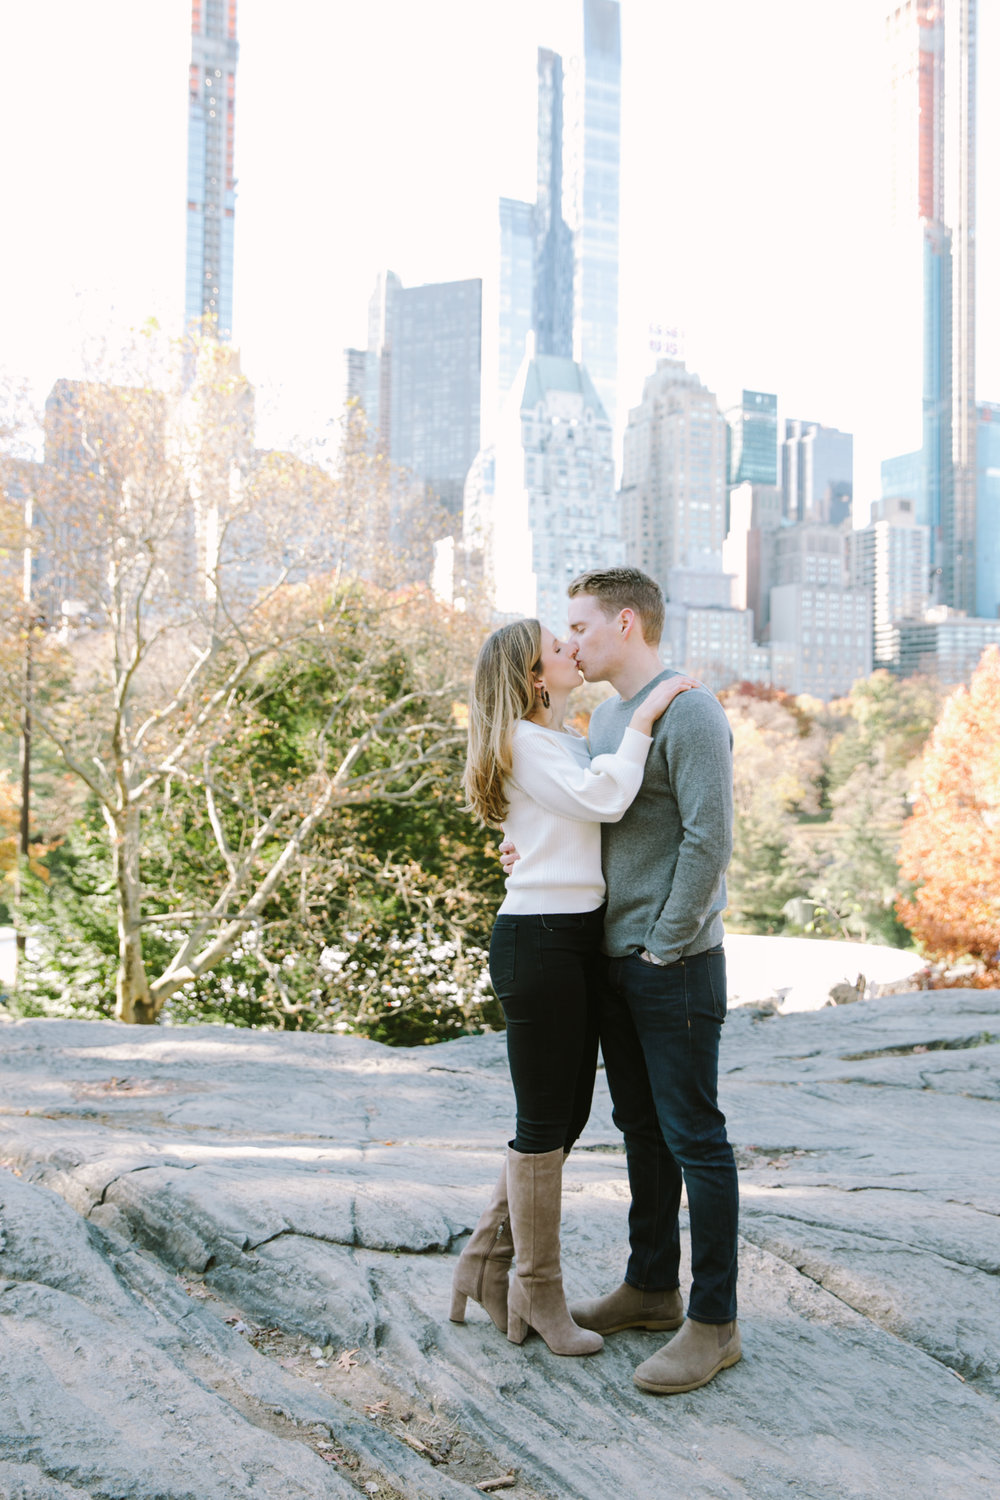 Central-park-fall-engagement-session-by Tanya Isaeva-73.jpg